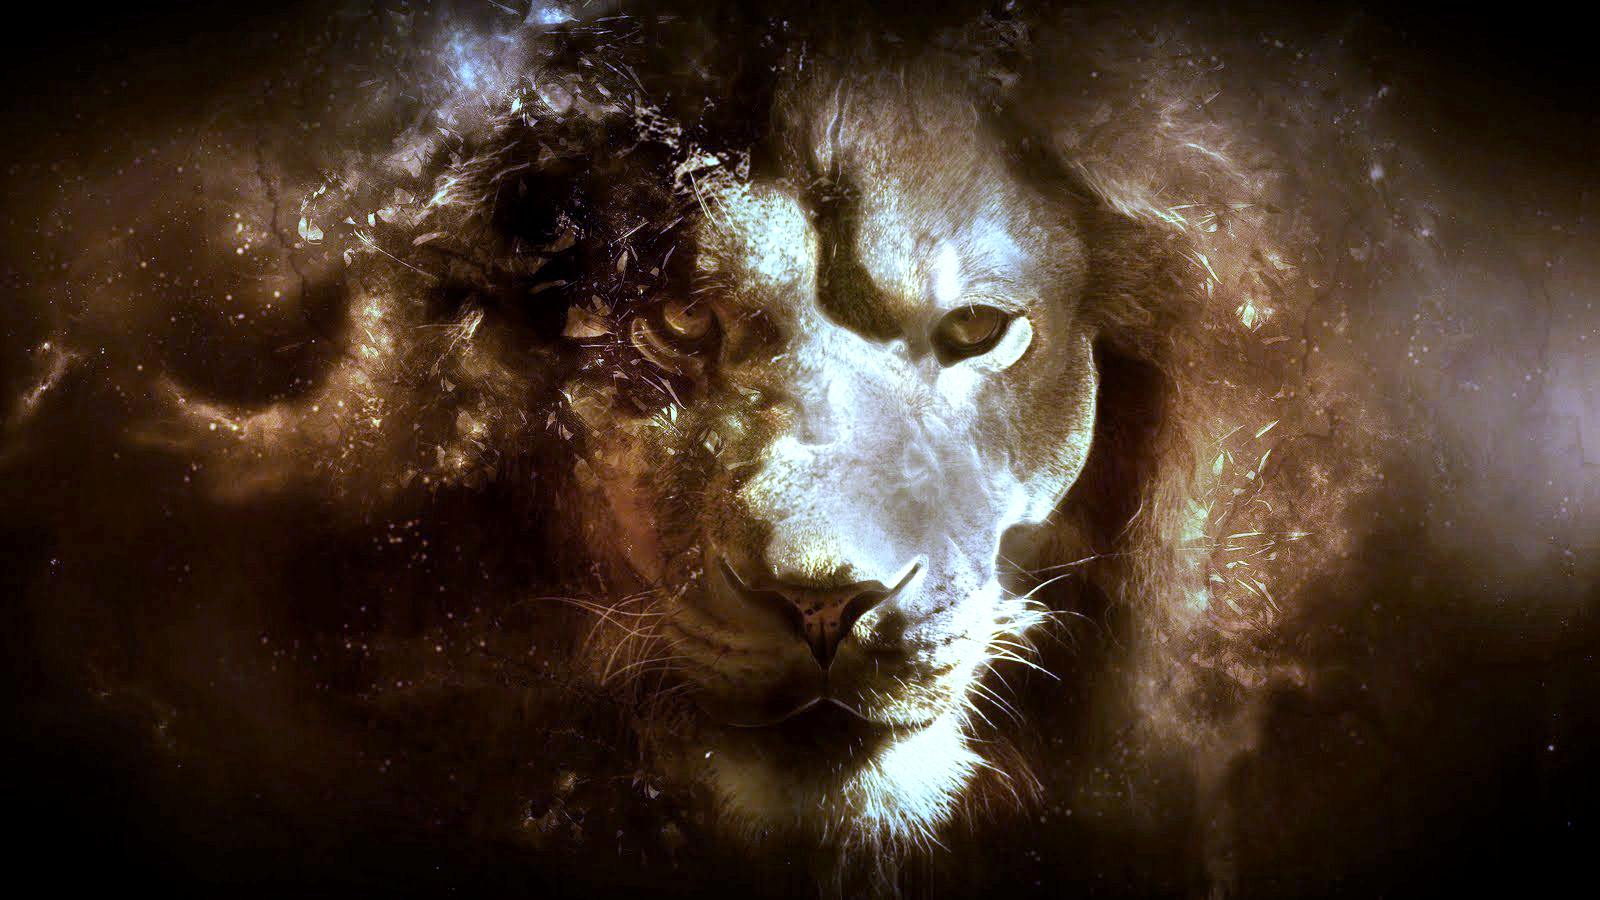 Lion Wallpapers HD Backgrounds, Images, Pics, Photos Free Download